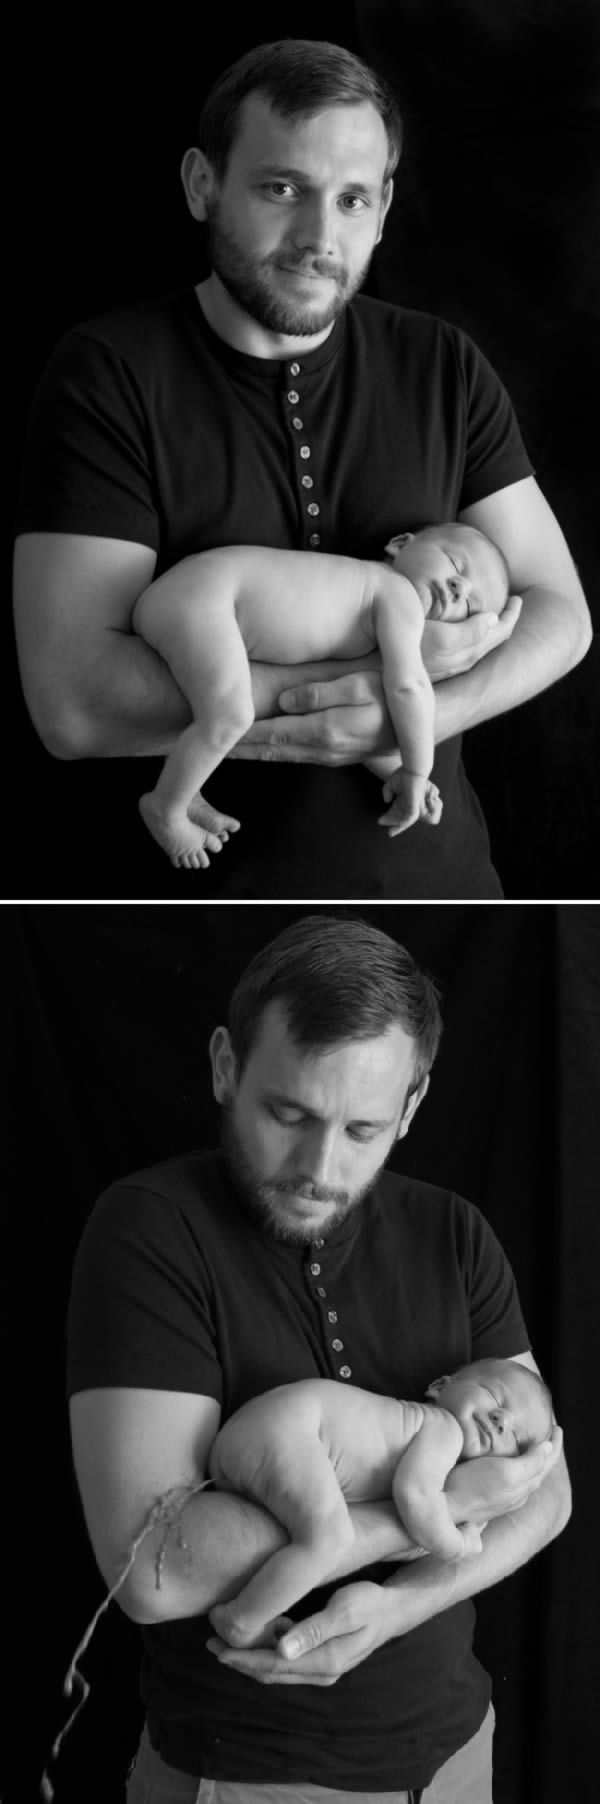 Newborn baby poops on his father's arm during tender b&w photoshoot